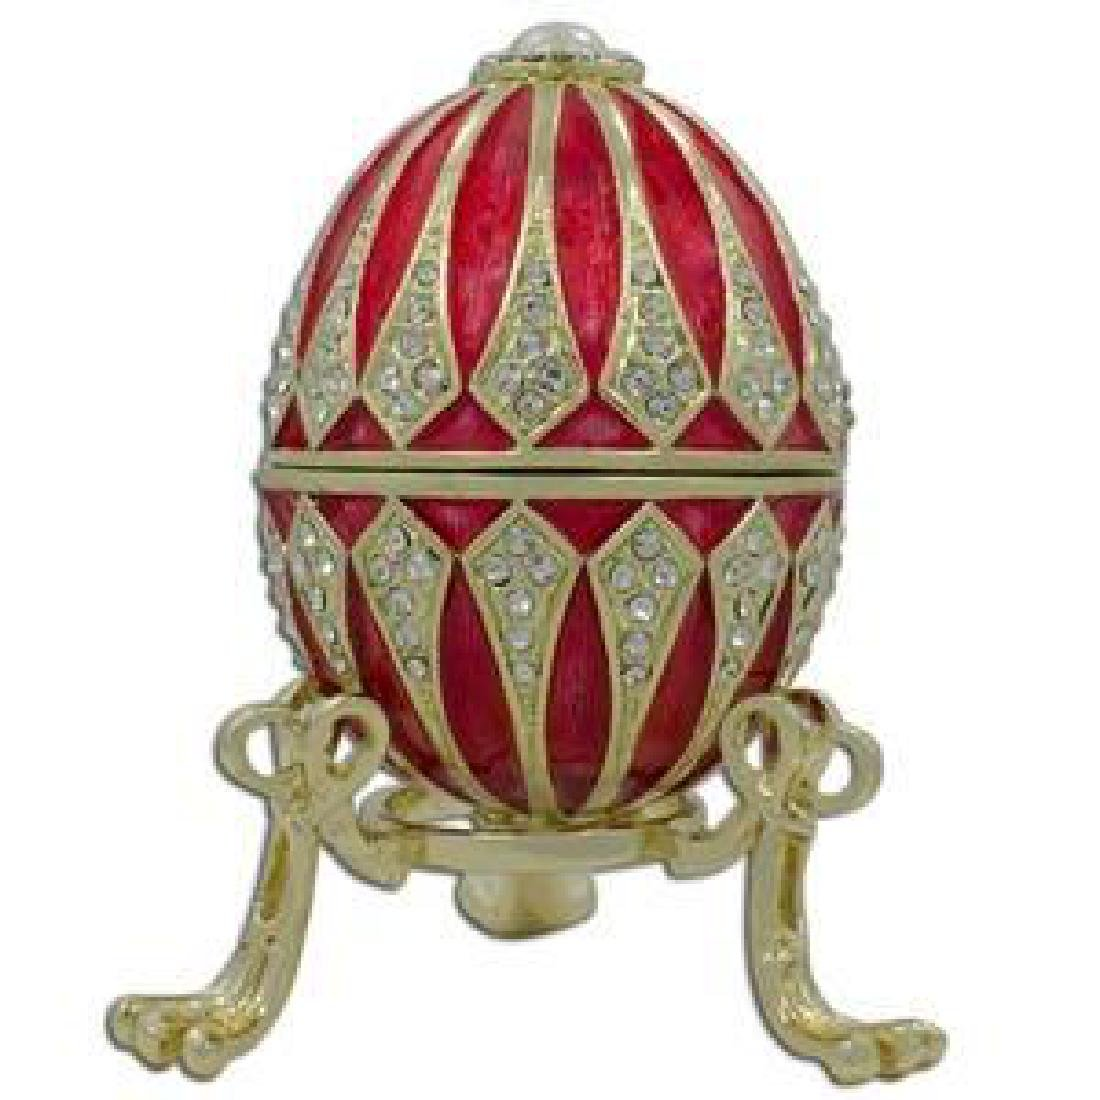 "3.25"" Red Enamel Jeweled Faberge Inspired Easter Egg"